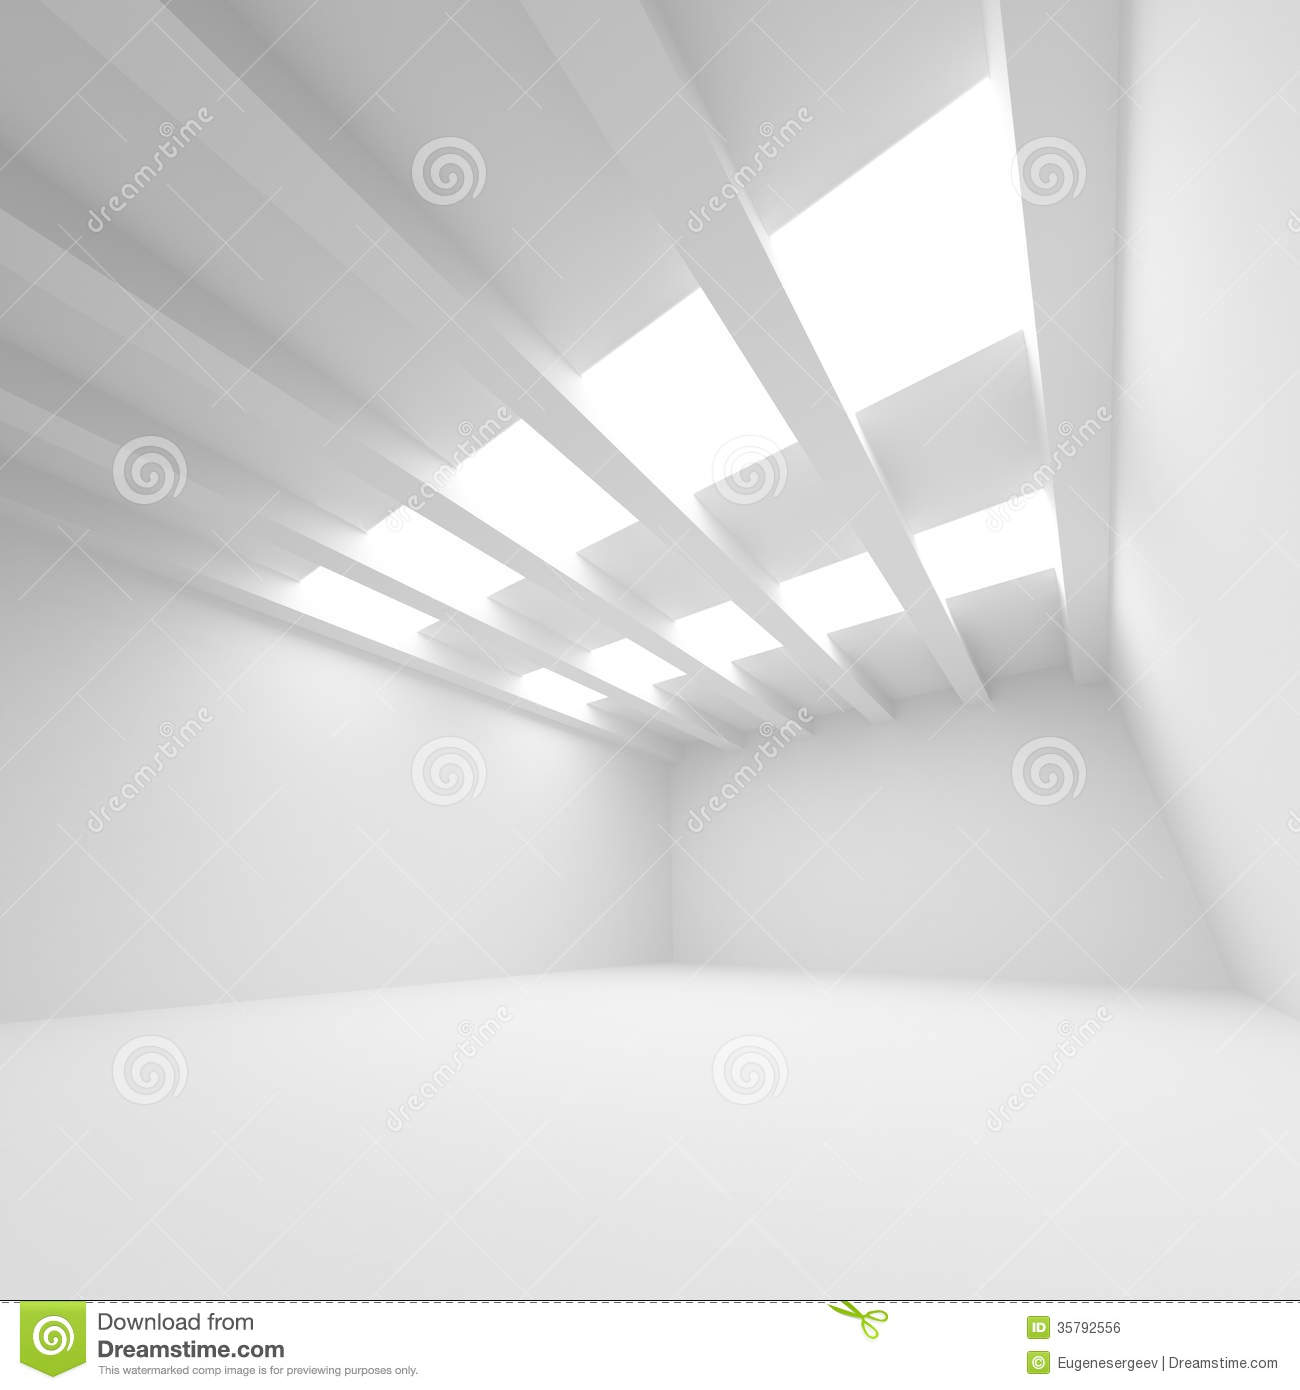 White Abstract Architecture Background Stock Illustration